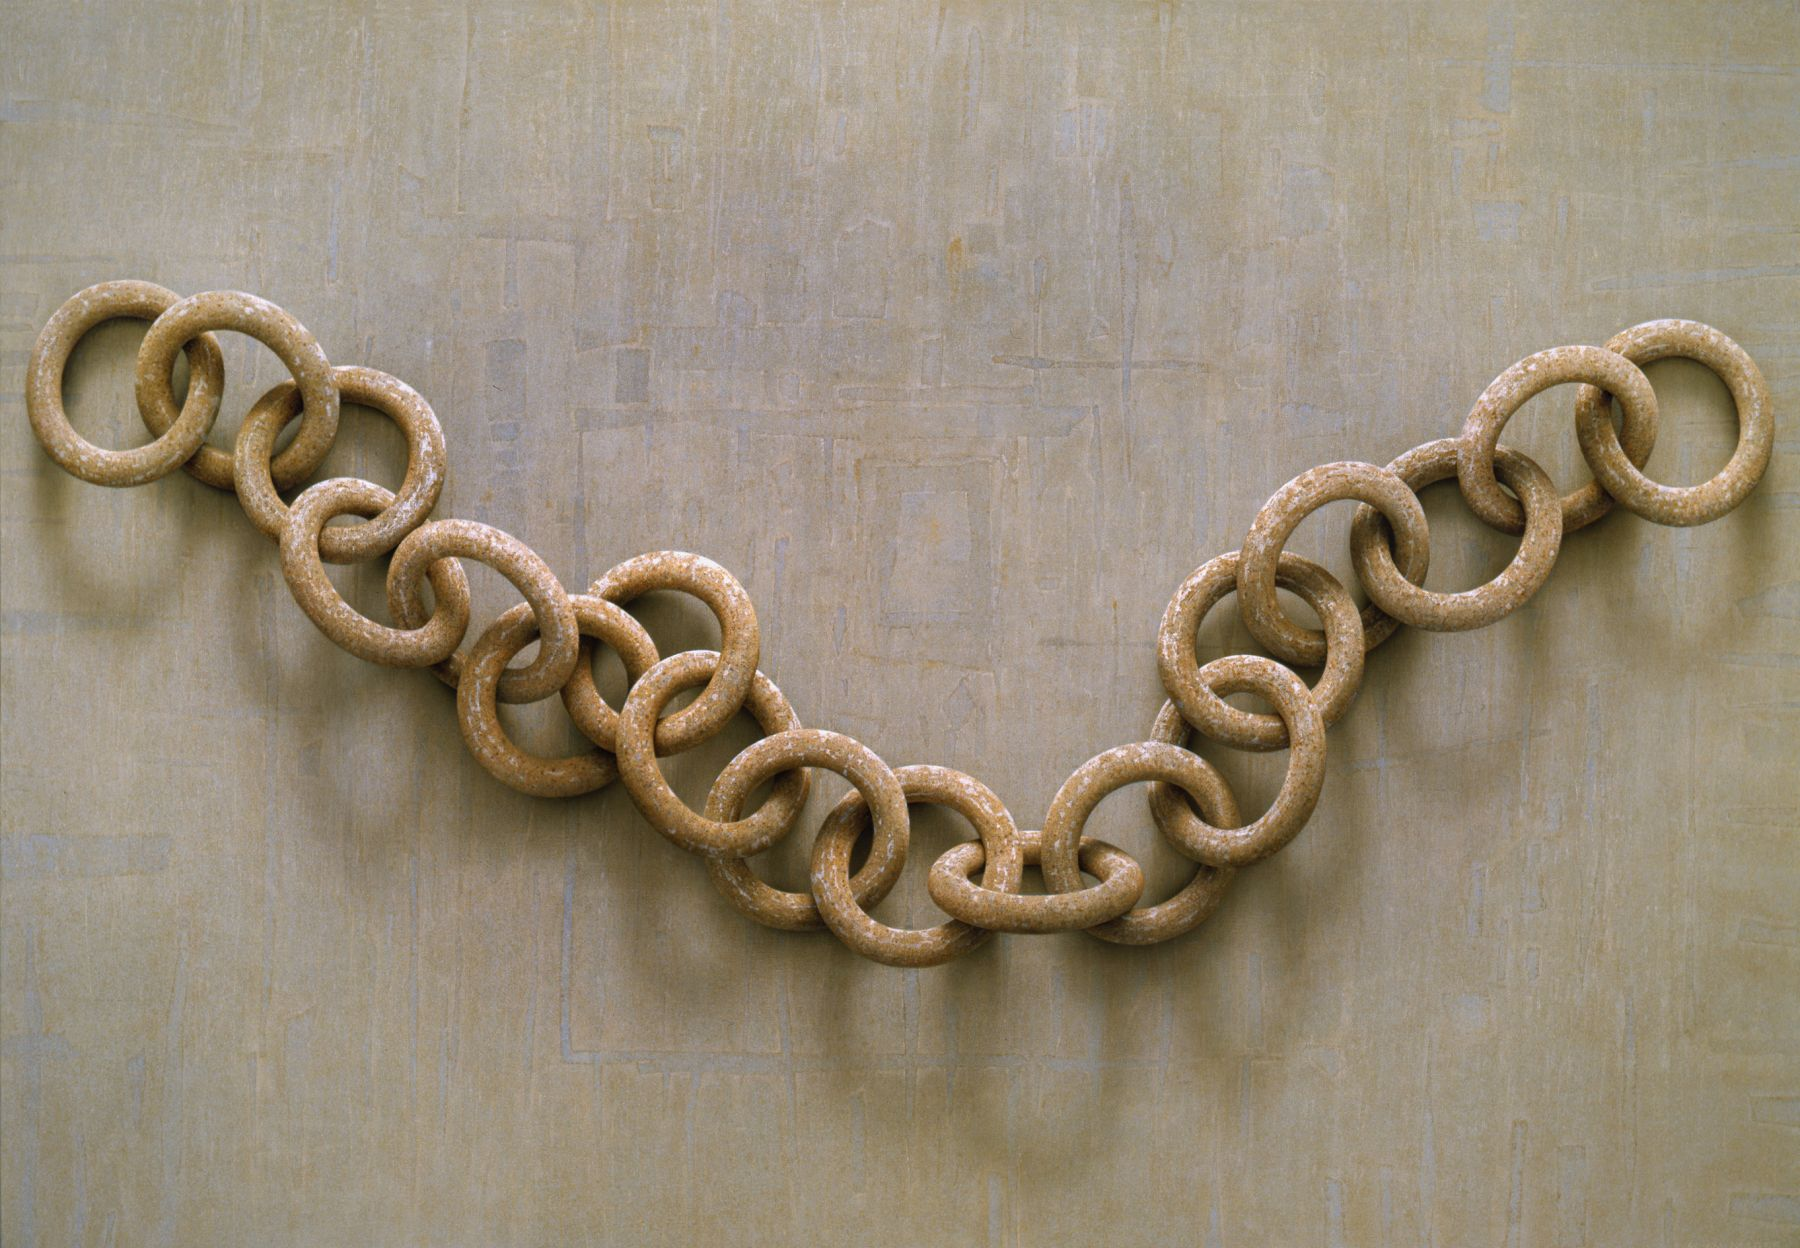 alan magee, Chain, 2008, acrylic on canvas, 58 x 84 inches